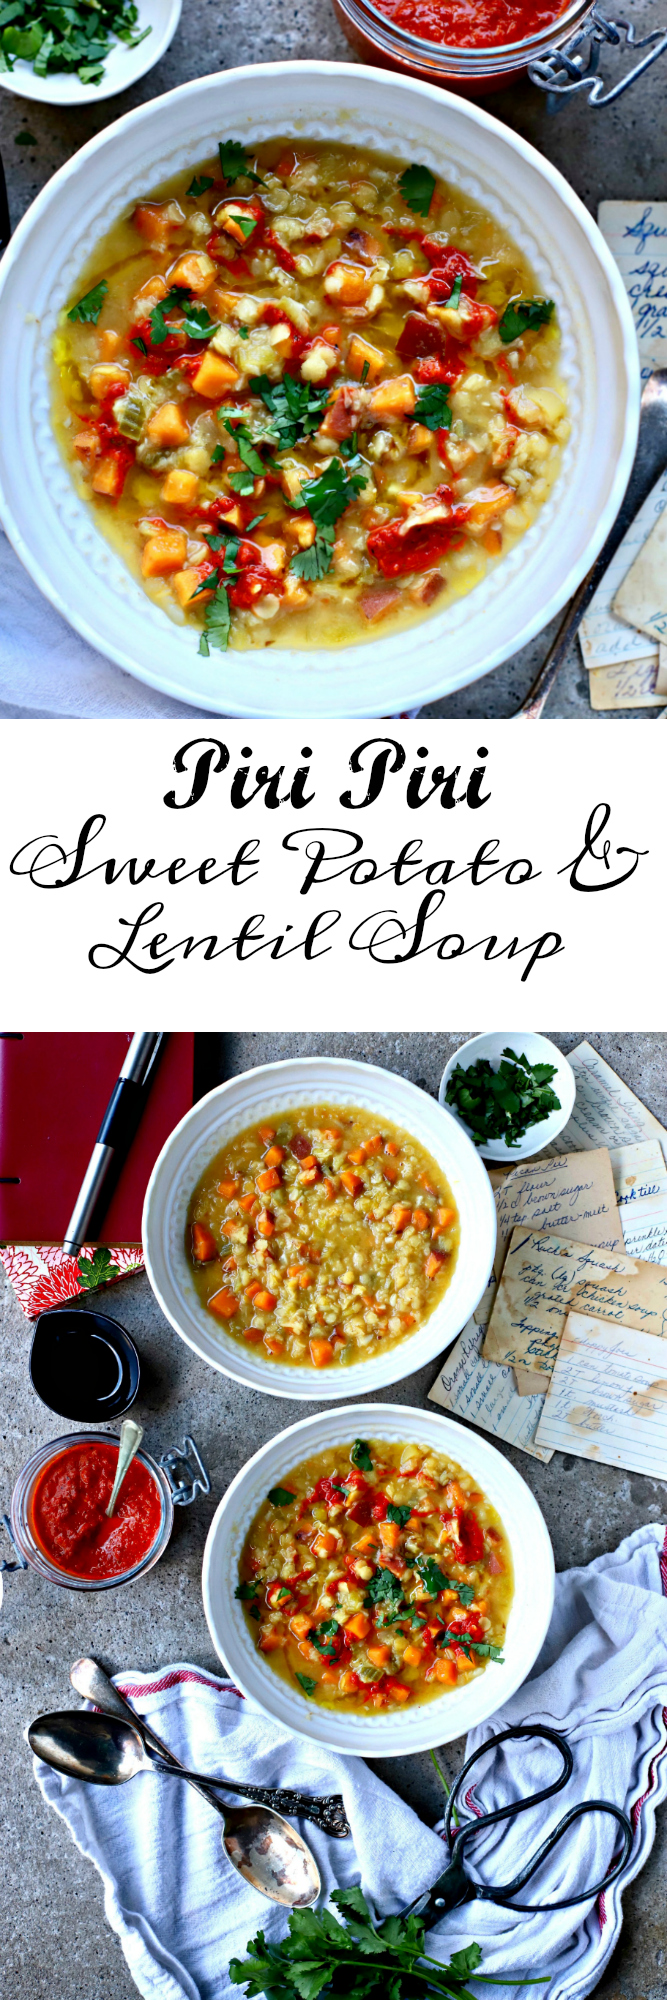 Swirls of homemade piri piri hot sauce top this family-friendly, sweet potato and lentil soup. Vegan, nutritious and perfect for lunch.